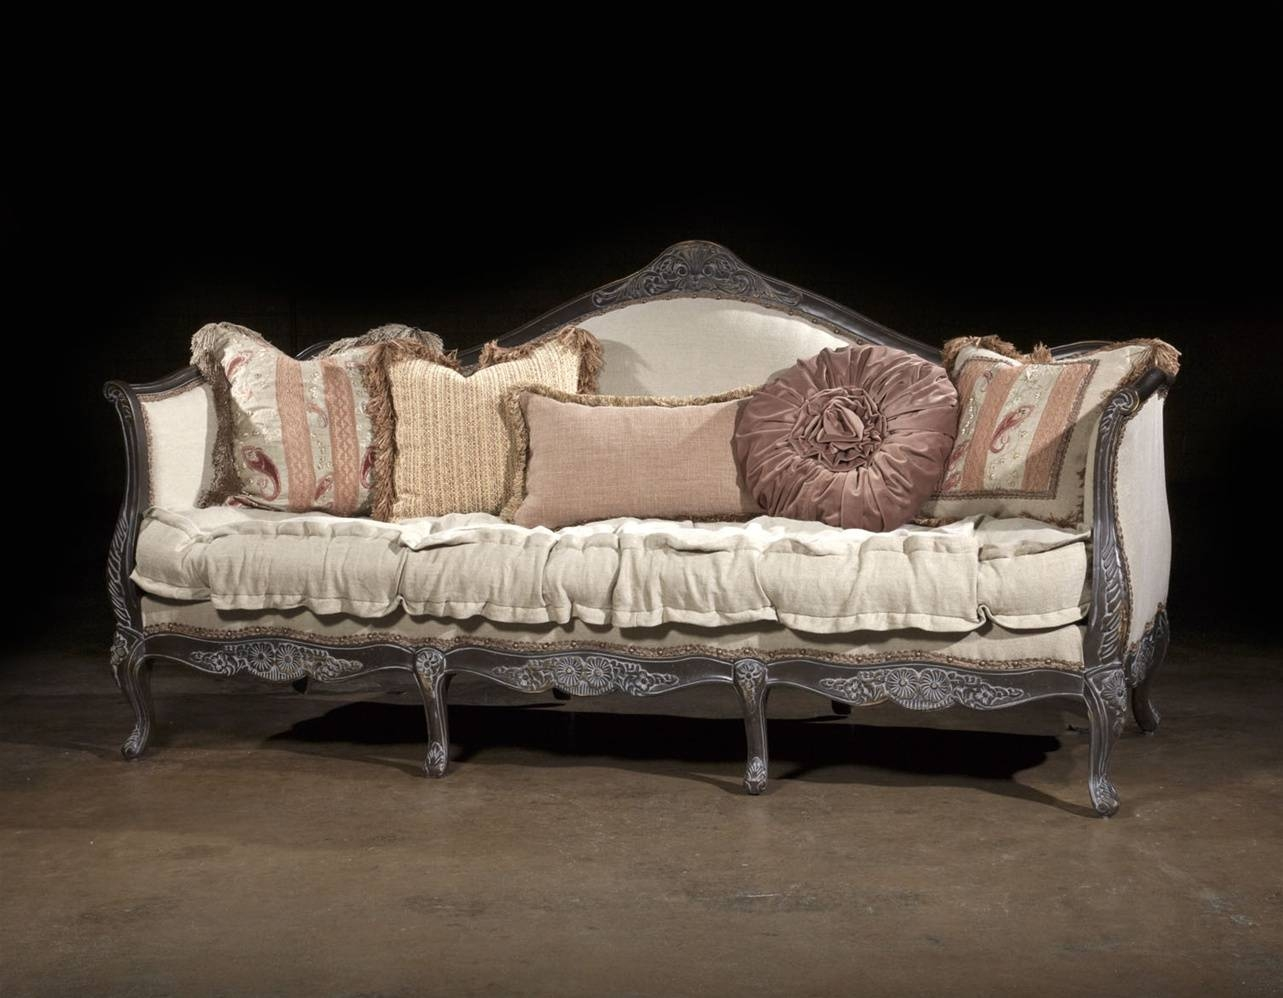 Lovely French Style Sofa 13 Sofas And Couches Ideas With French regarding French Style Sofa (Image 14 of 25)